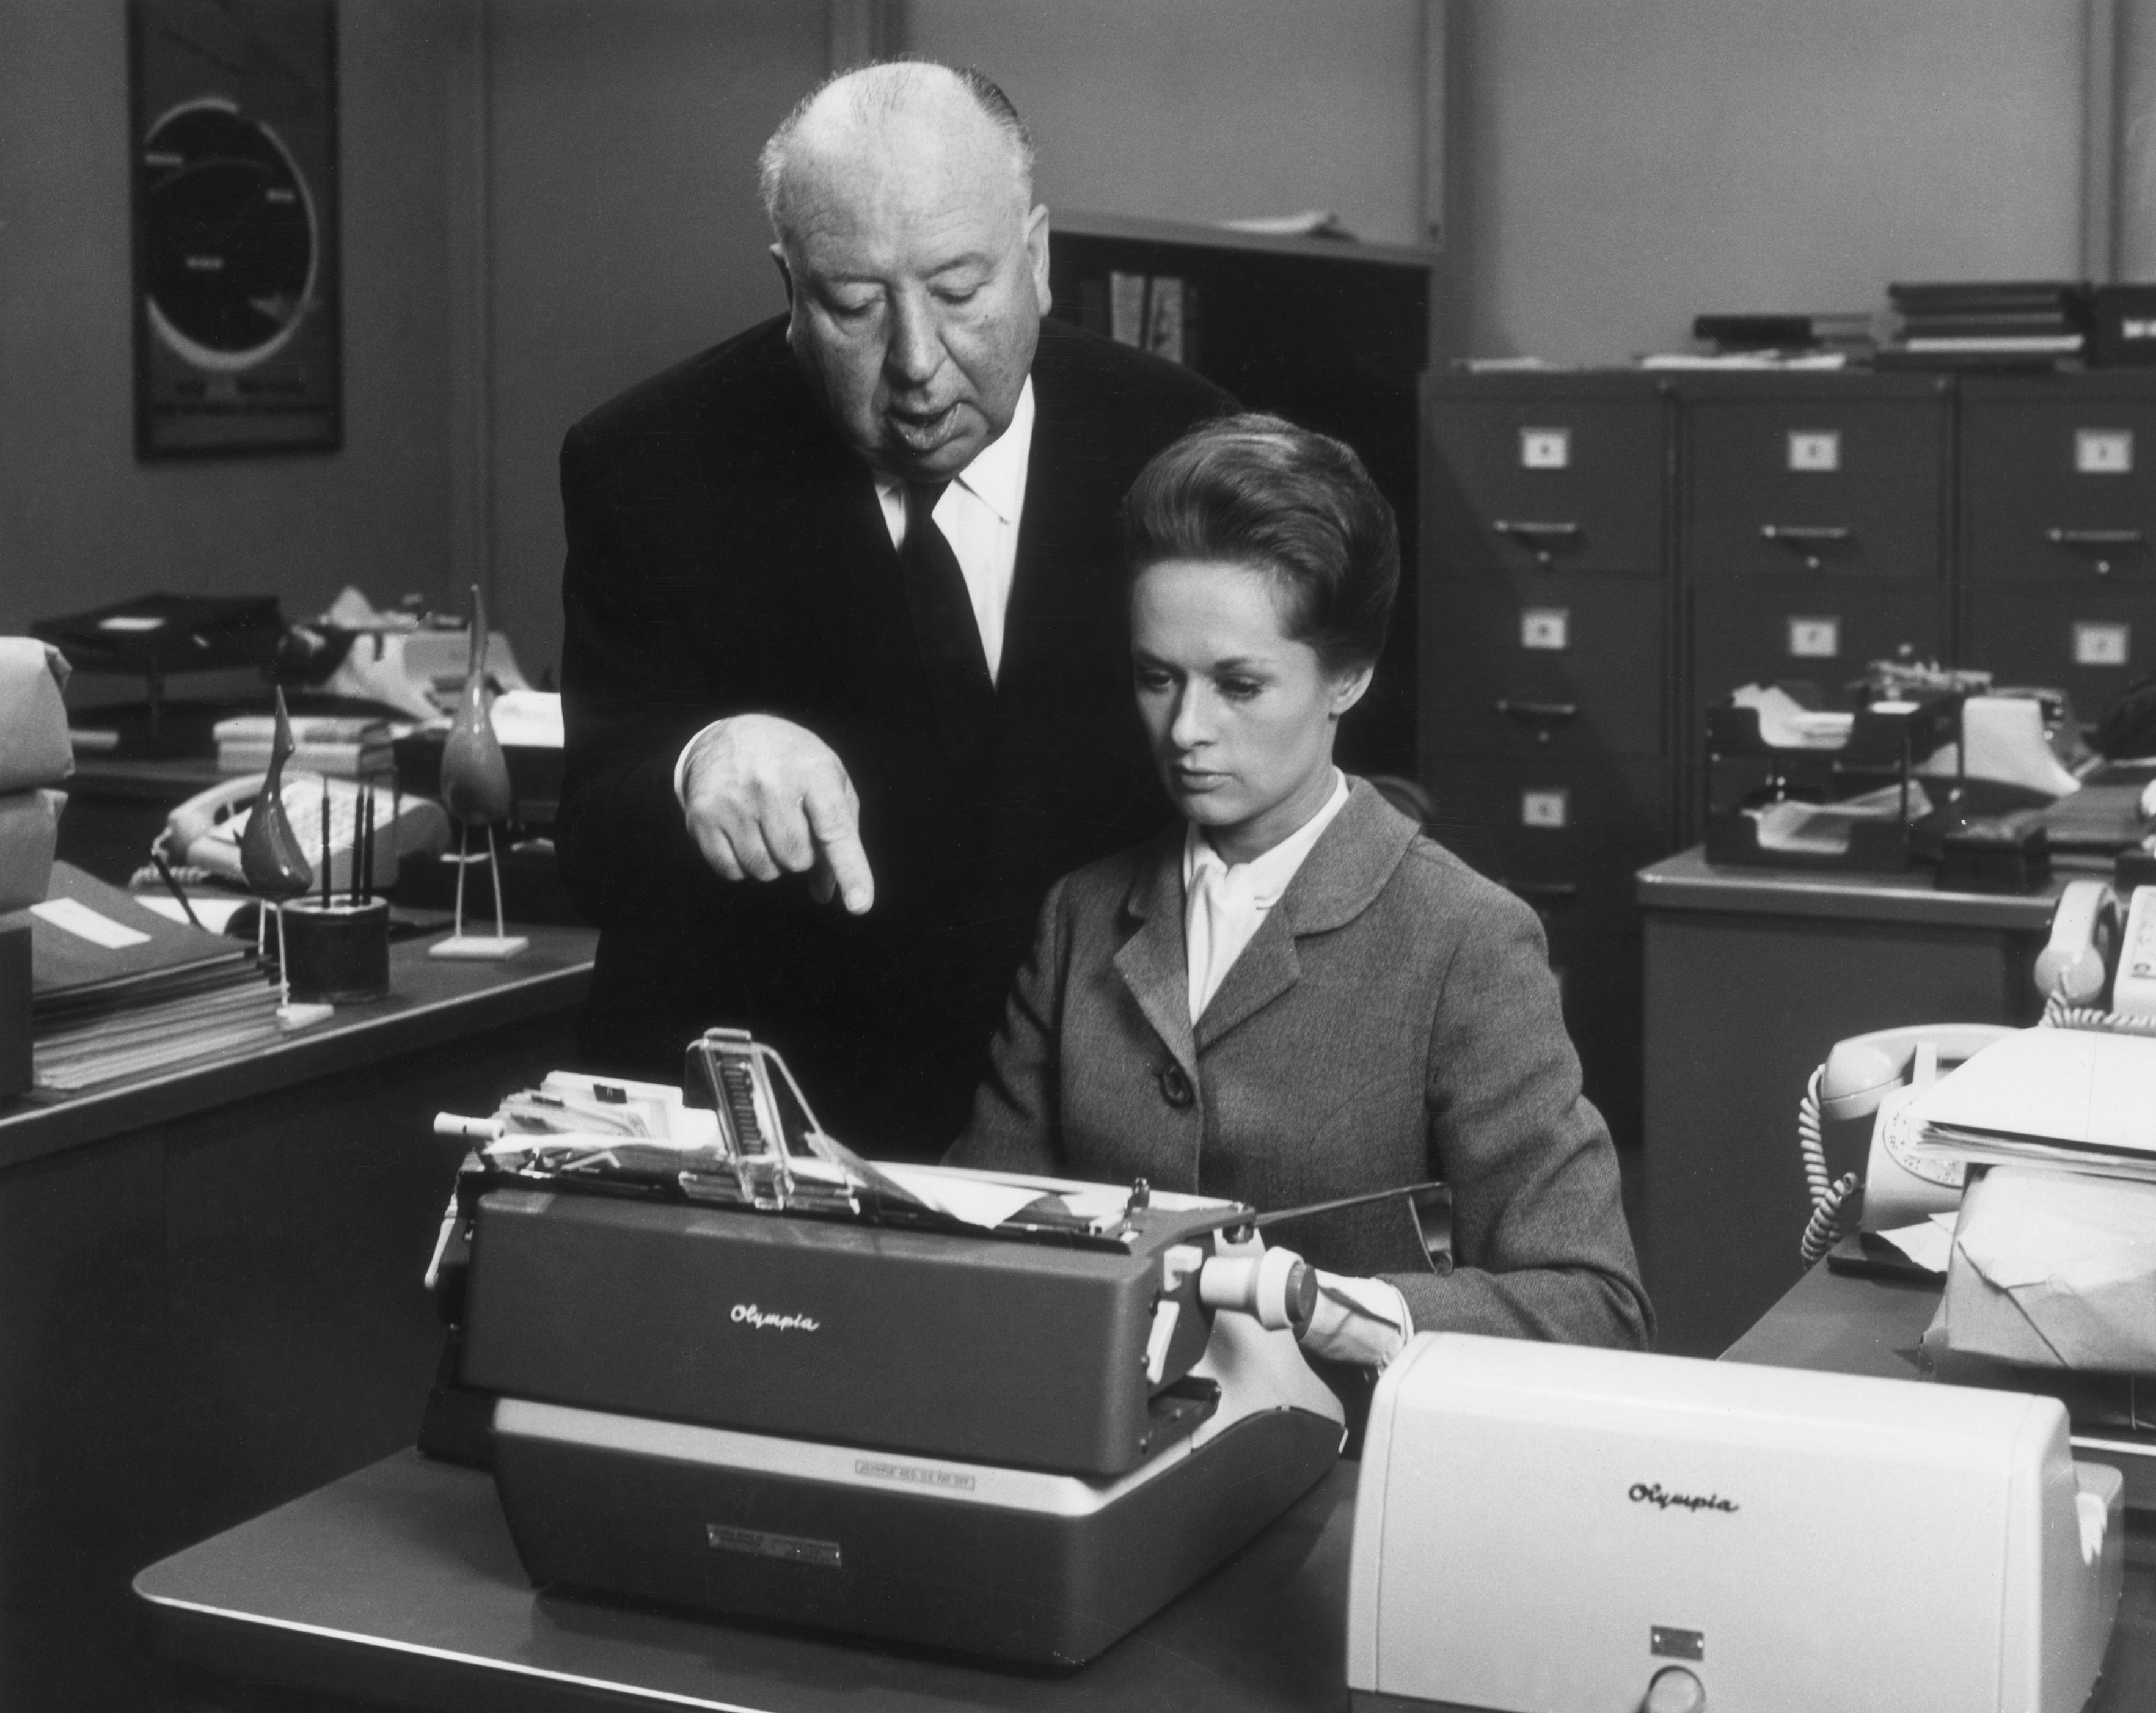 British director Alfred Hitchcock directs American actor Tippi Hedren while she sits in front of a typewriter on the set of his film, 'Marnie'.